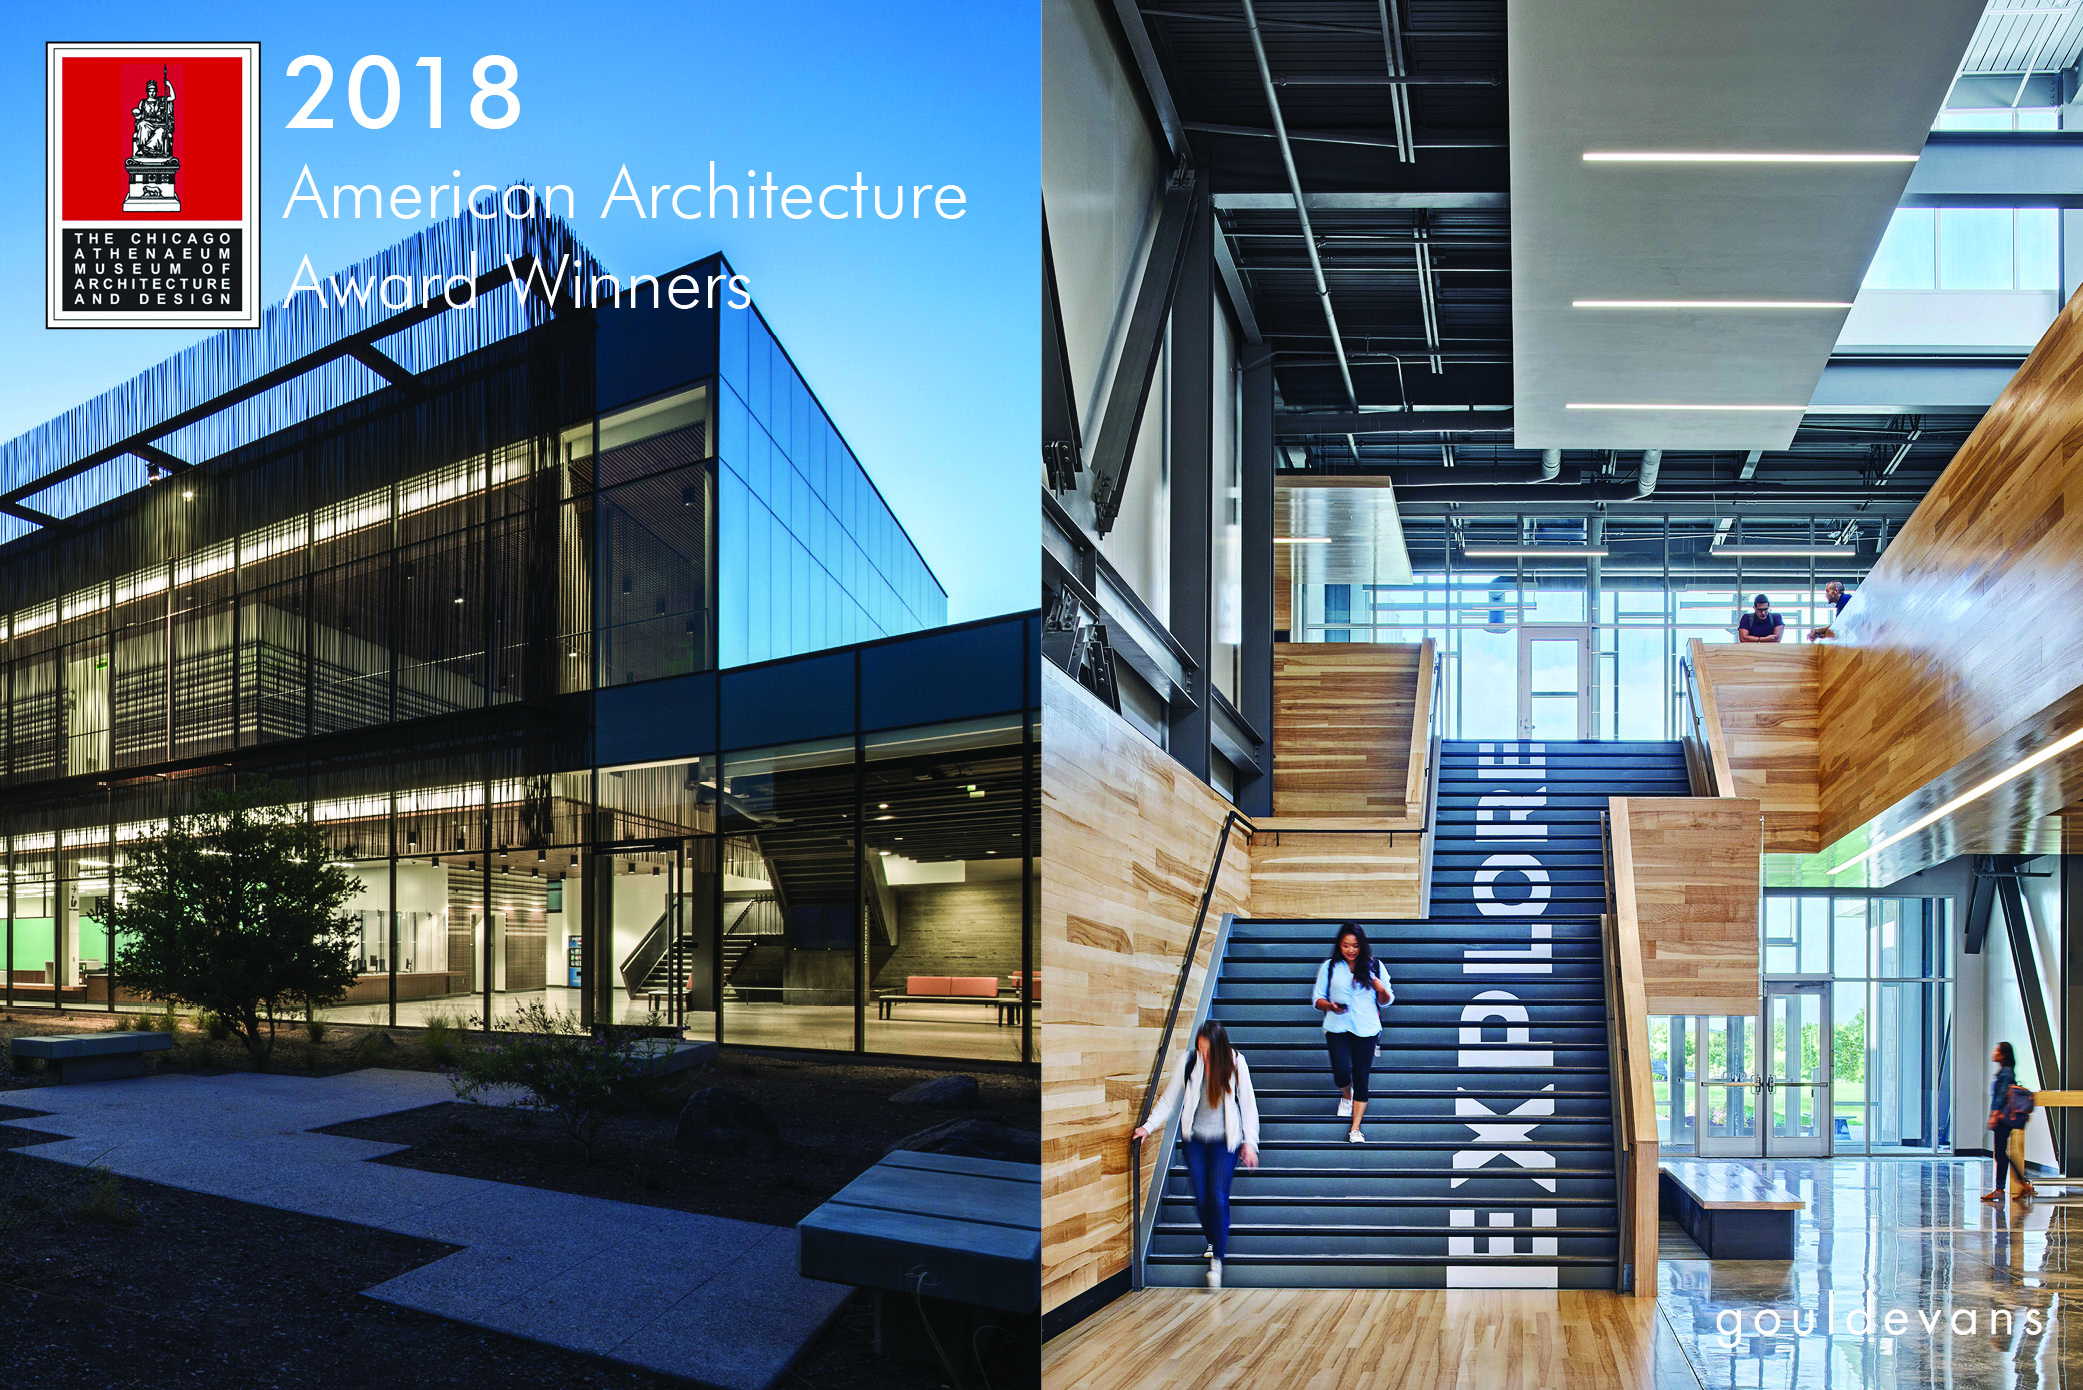 gould evans wins chicago athenaeum 2018 american architecture awards